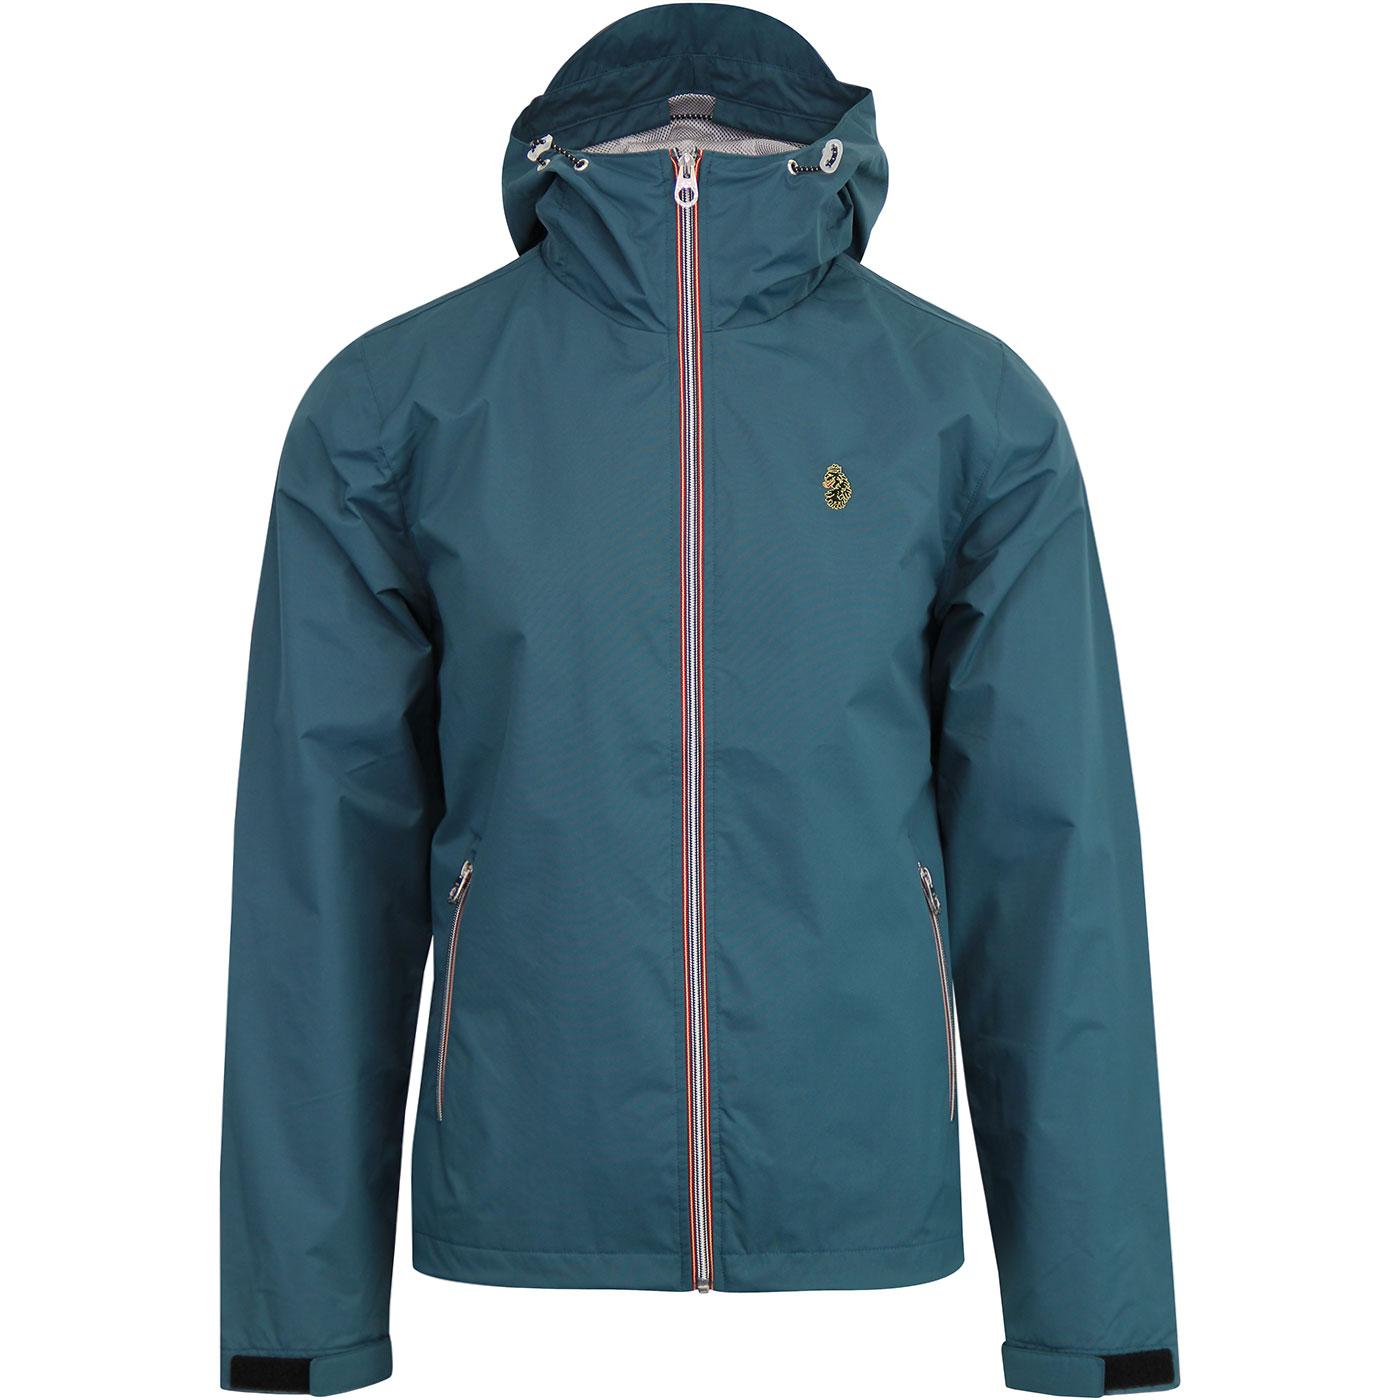 Raleigh LUKE 1977 Retro Anorak Jacket (Atlantic)